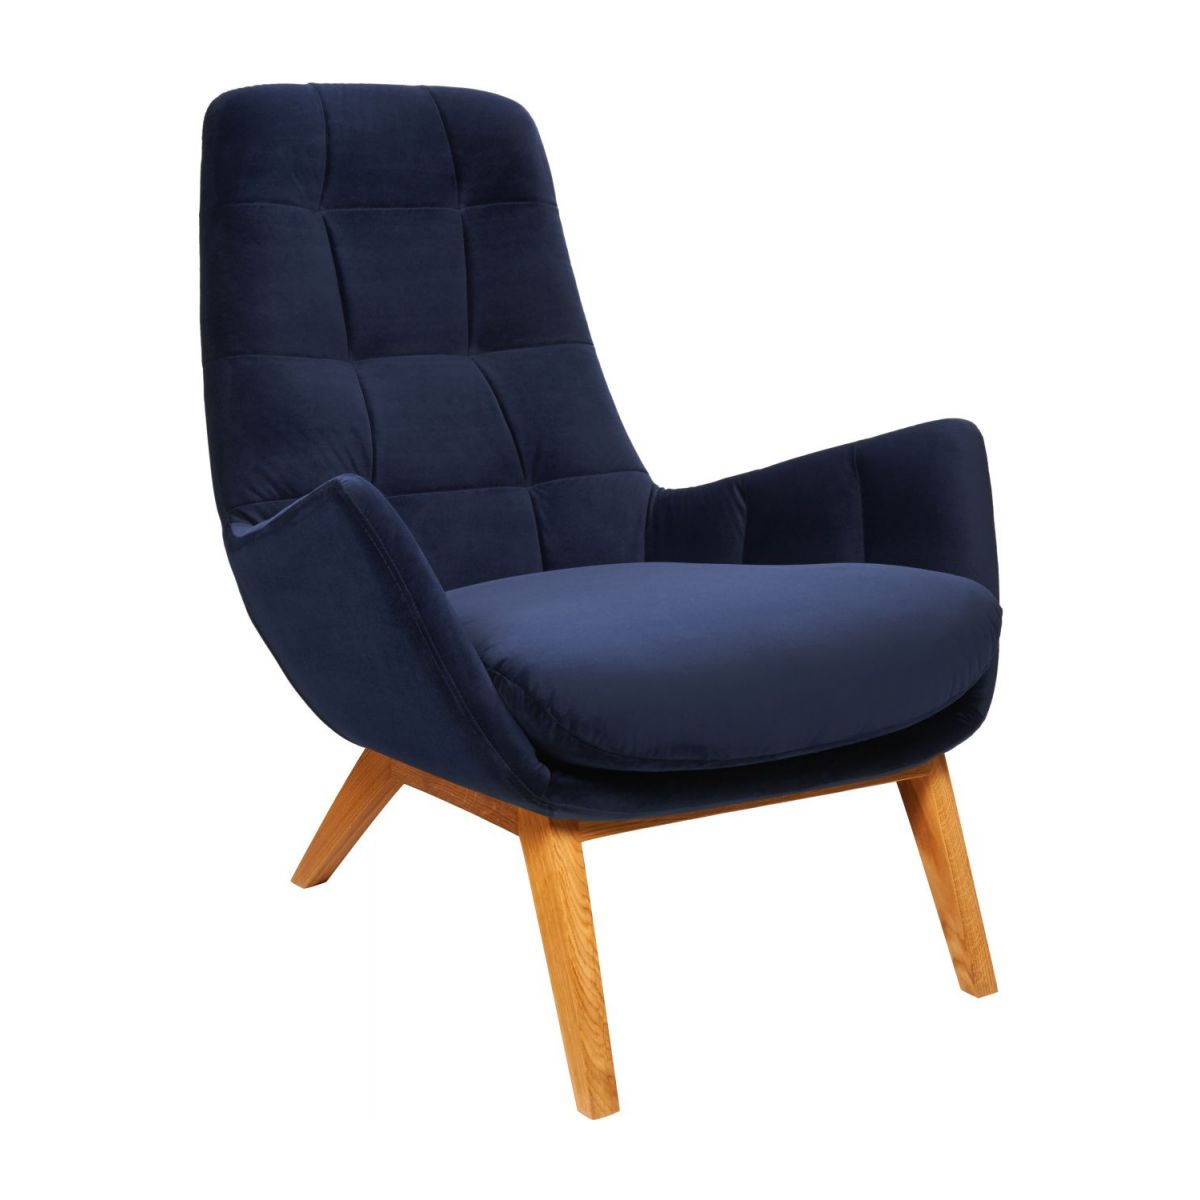 Sessel Samt Sessel Samt With Sessel Samt Best On The